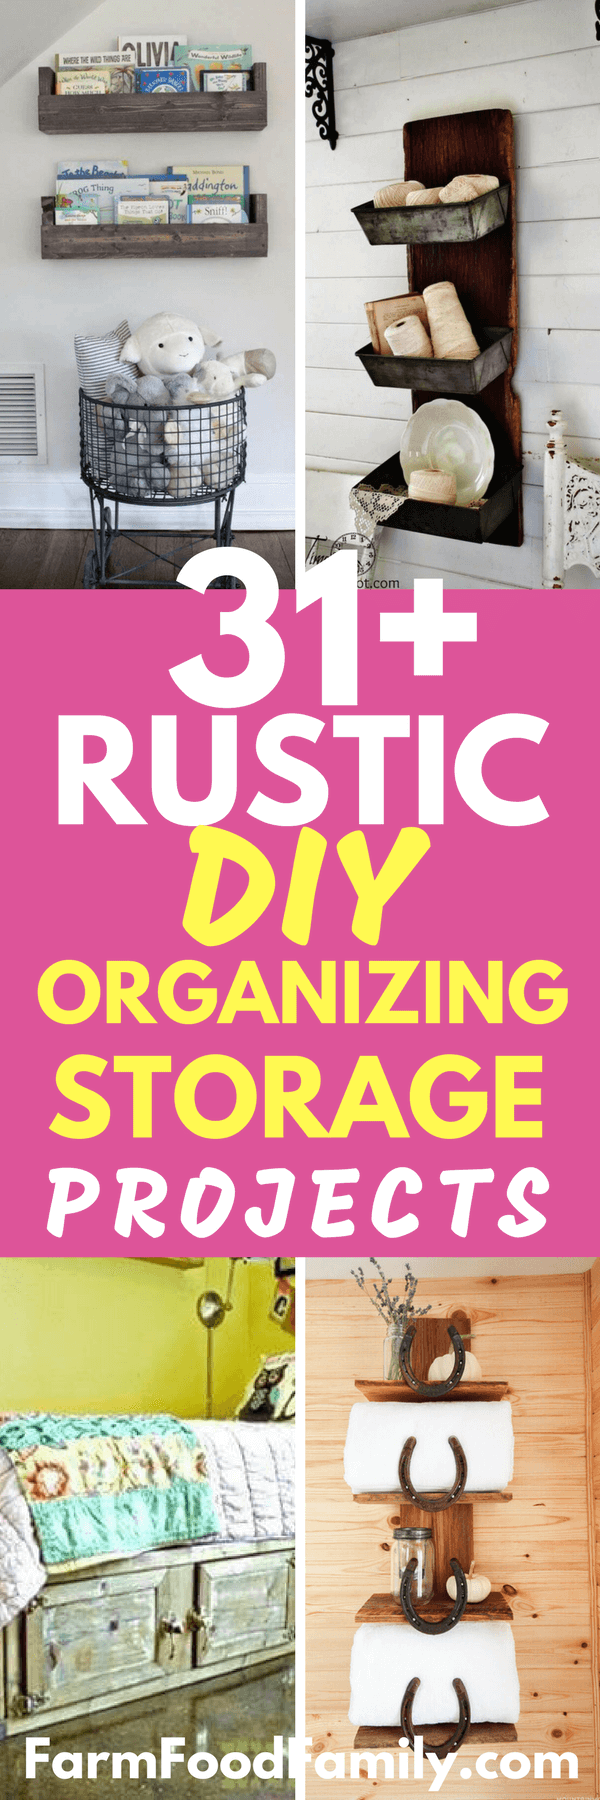 Check out these 31+ DIY Rustic Organizing and Storage Projects for your lovely house #homedecor #organisation #storage #farmhouse #rustic #farmfoodfamily